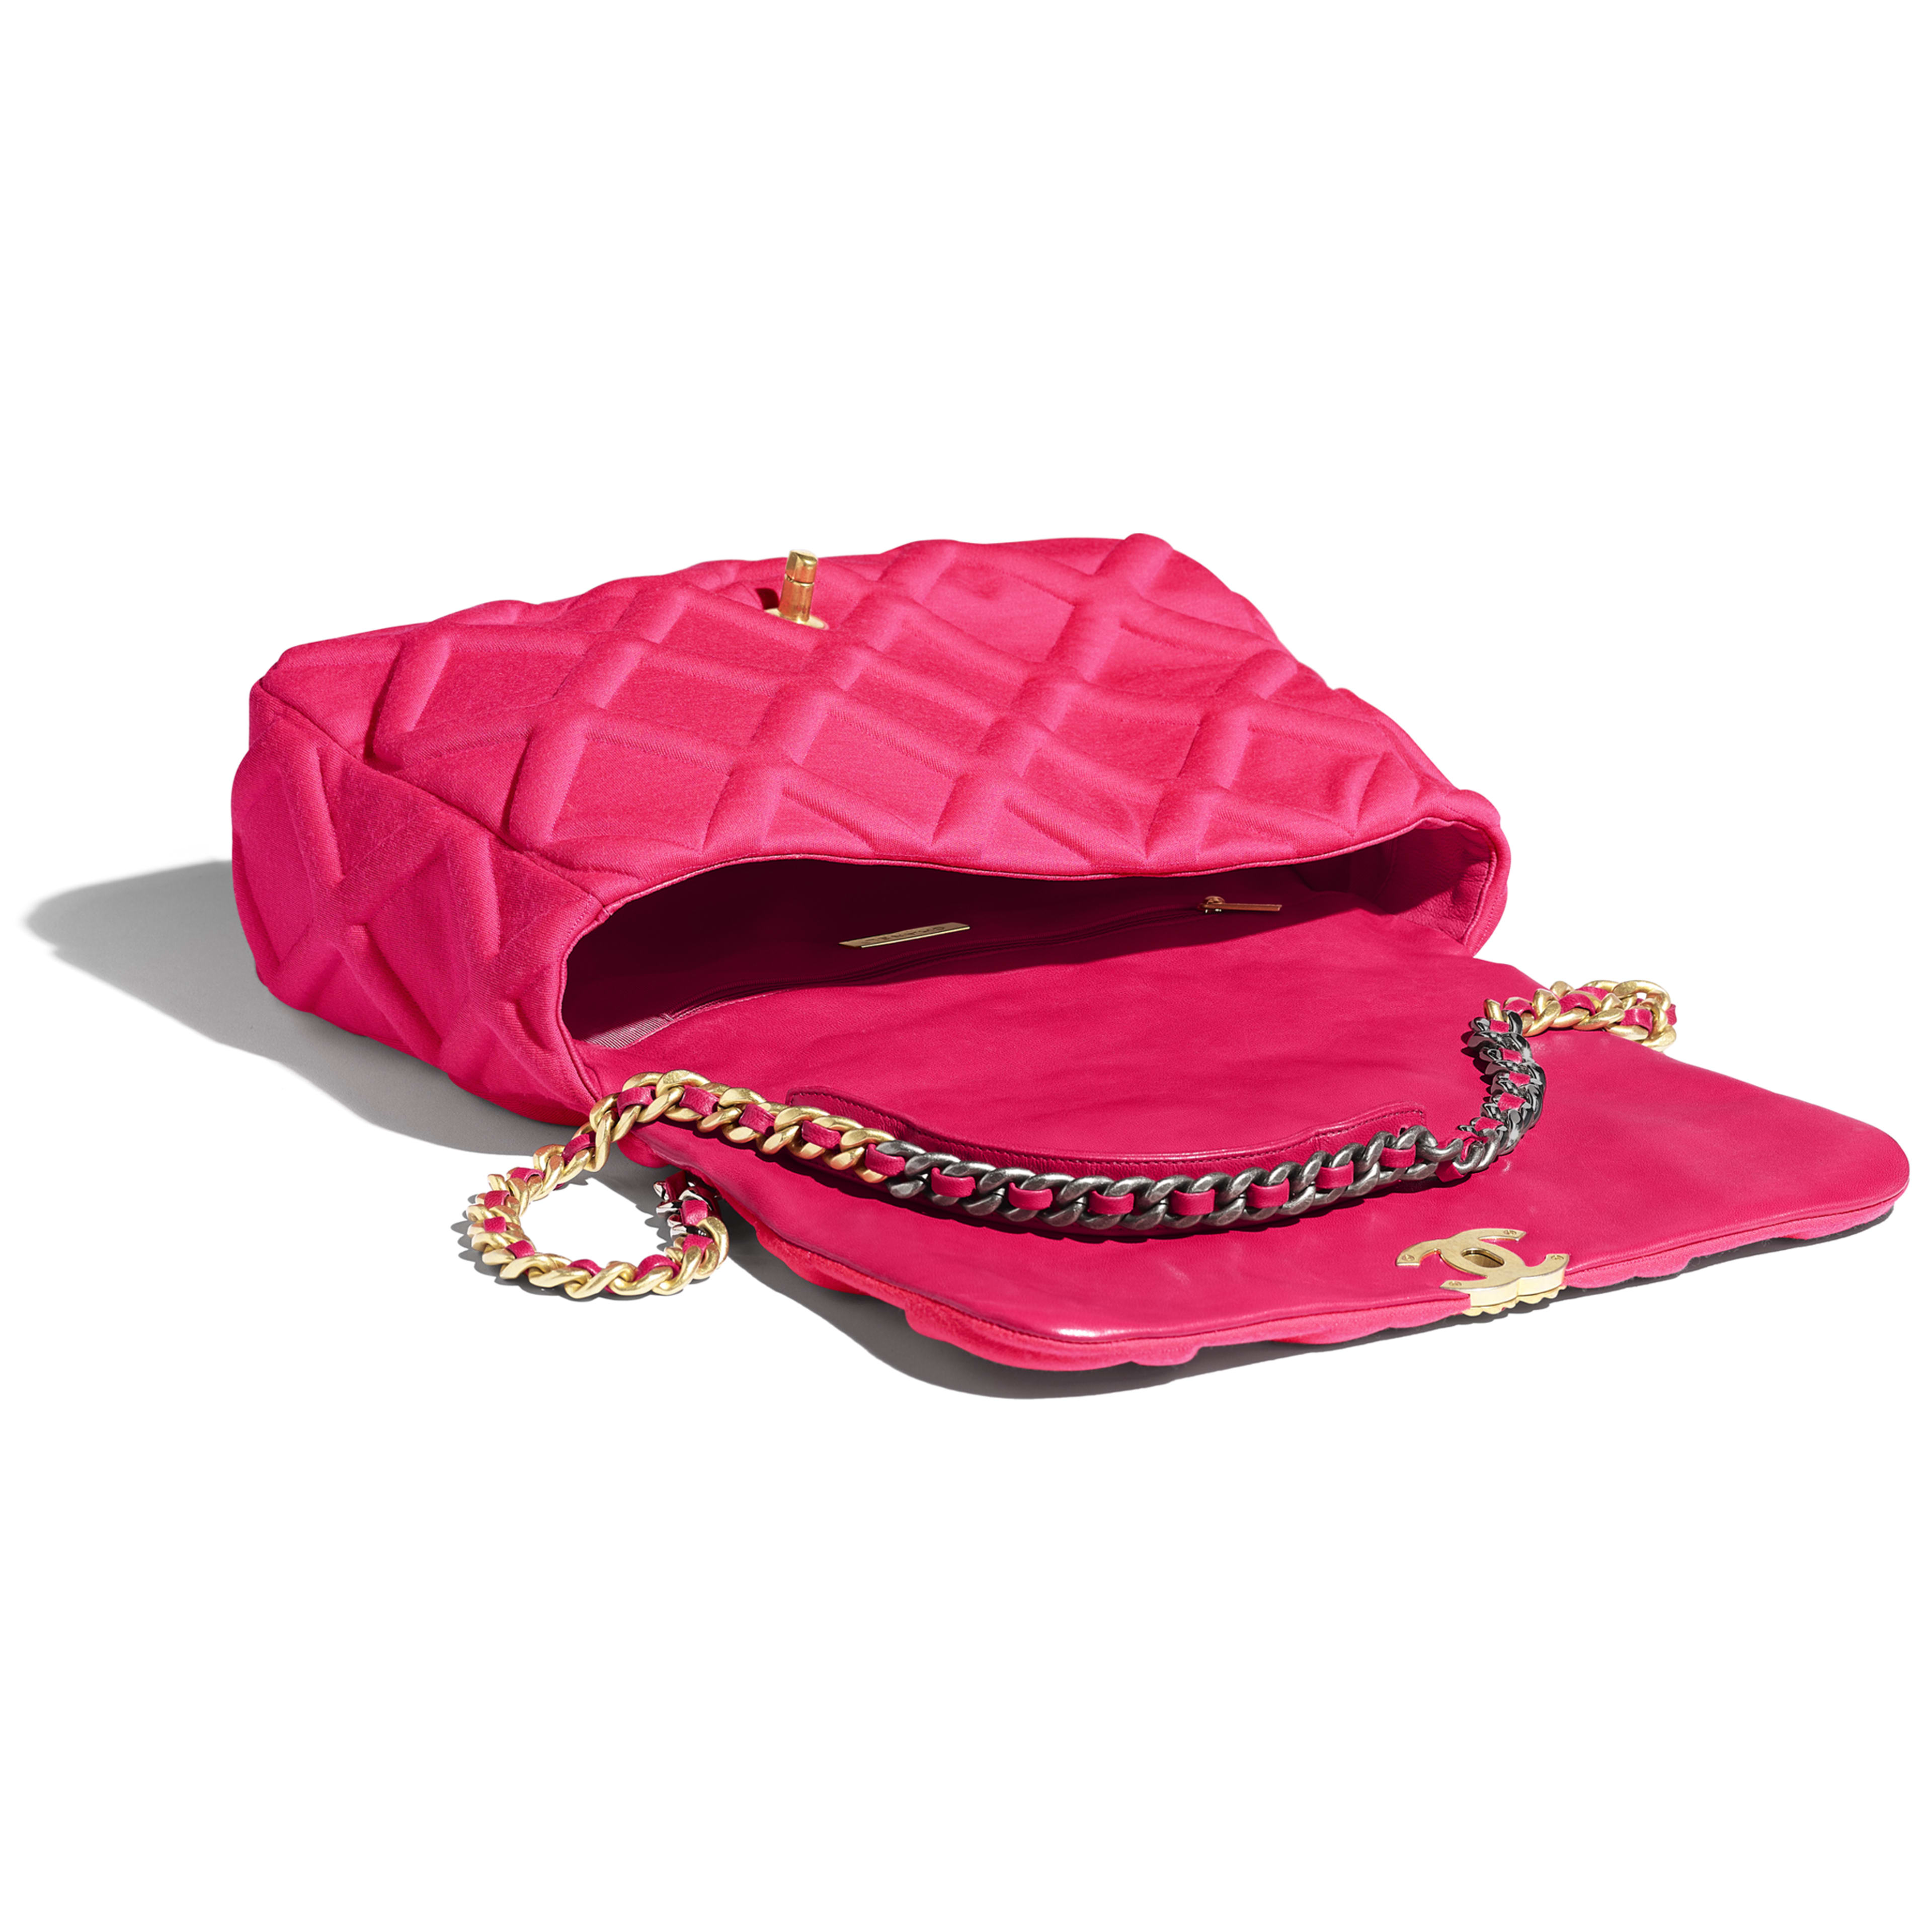 CHANEL 19 Maxi Flap Bag - Pink - Jersey, Gold-Tone, Silver-Tone & Ruthenium-Finish Metal - Other view - see full sized version